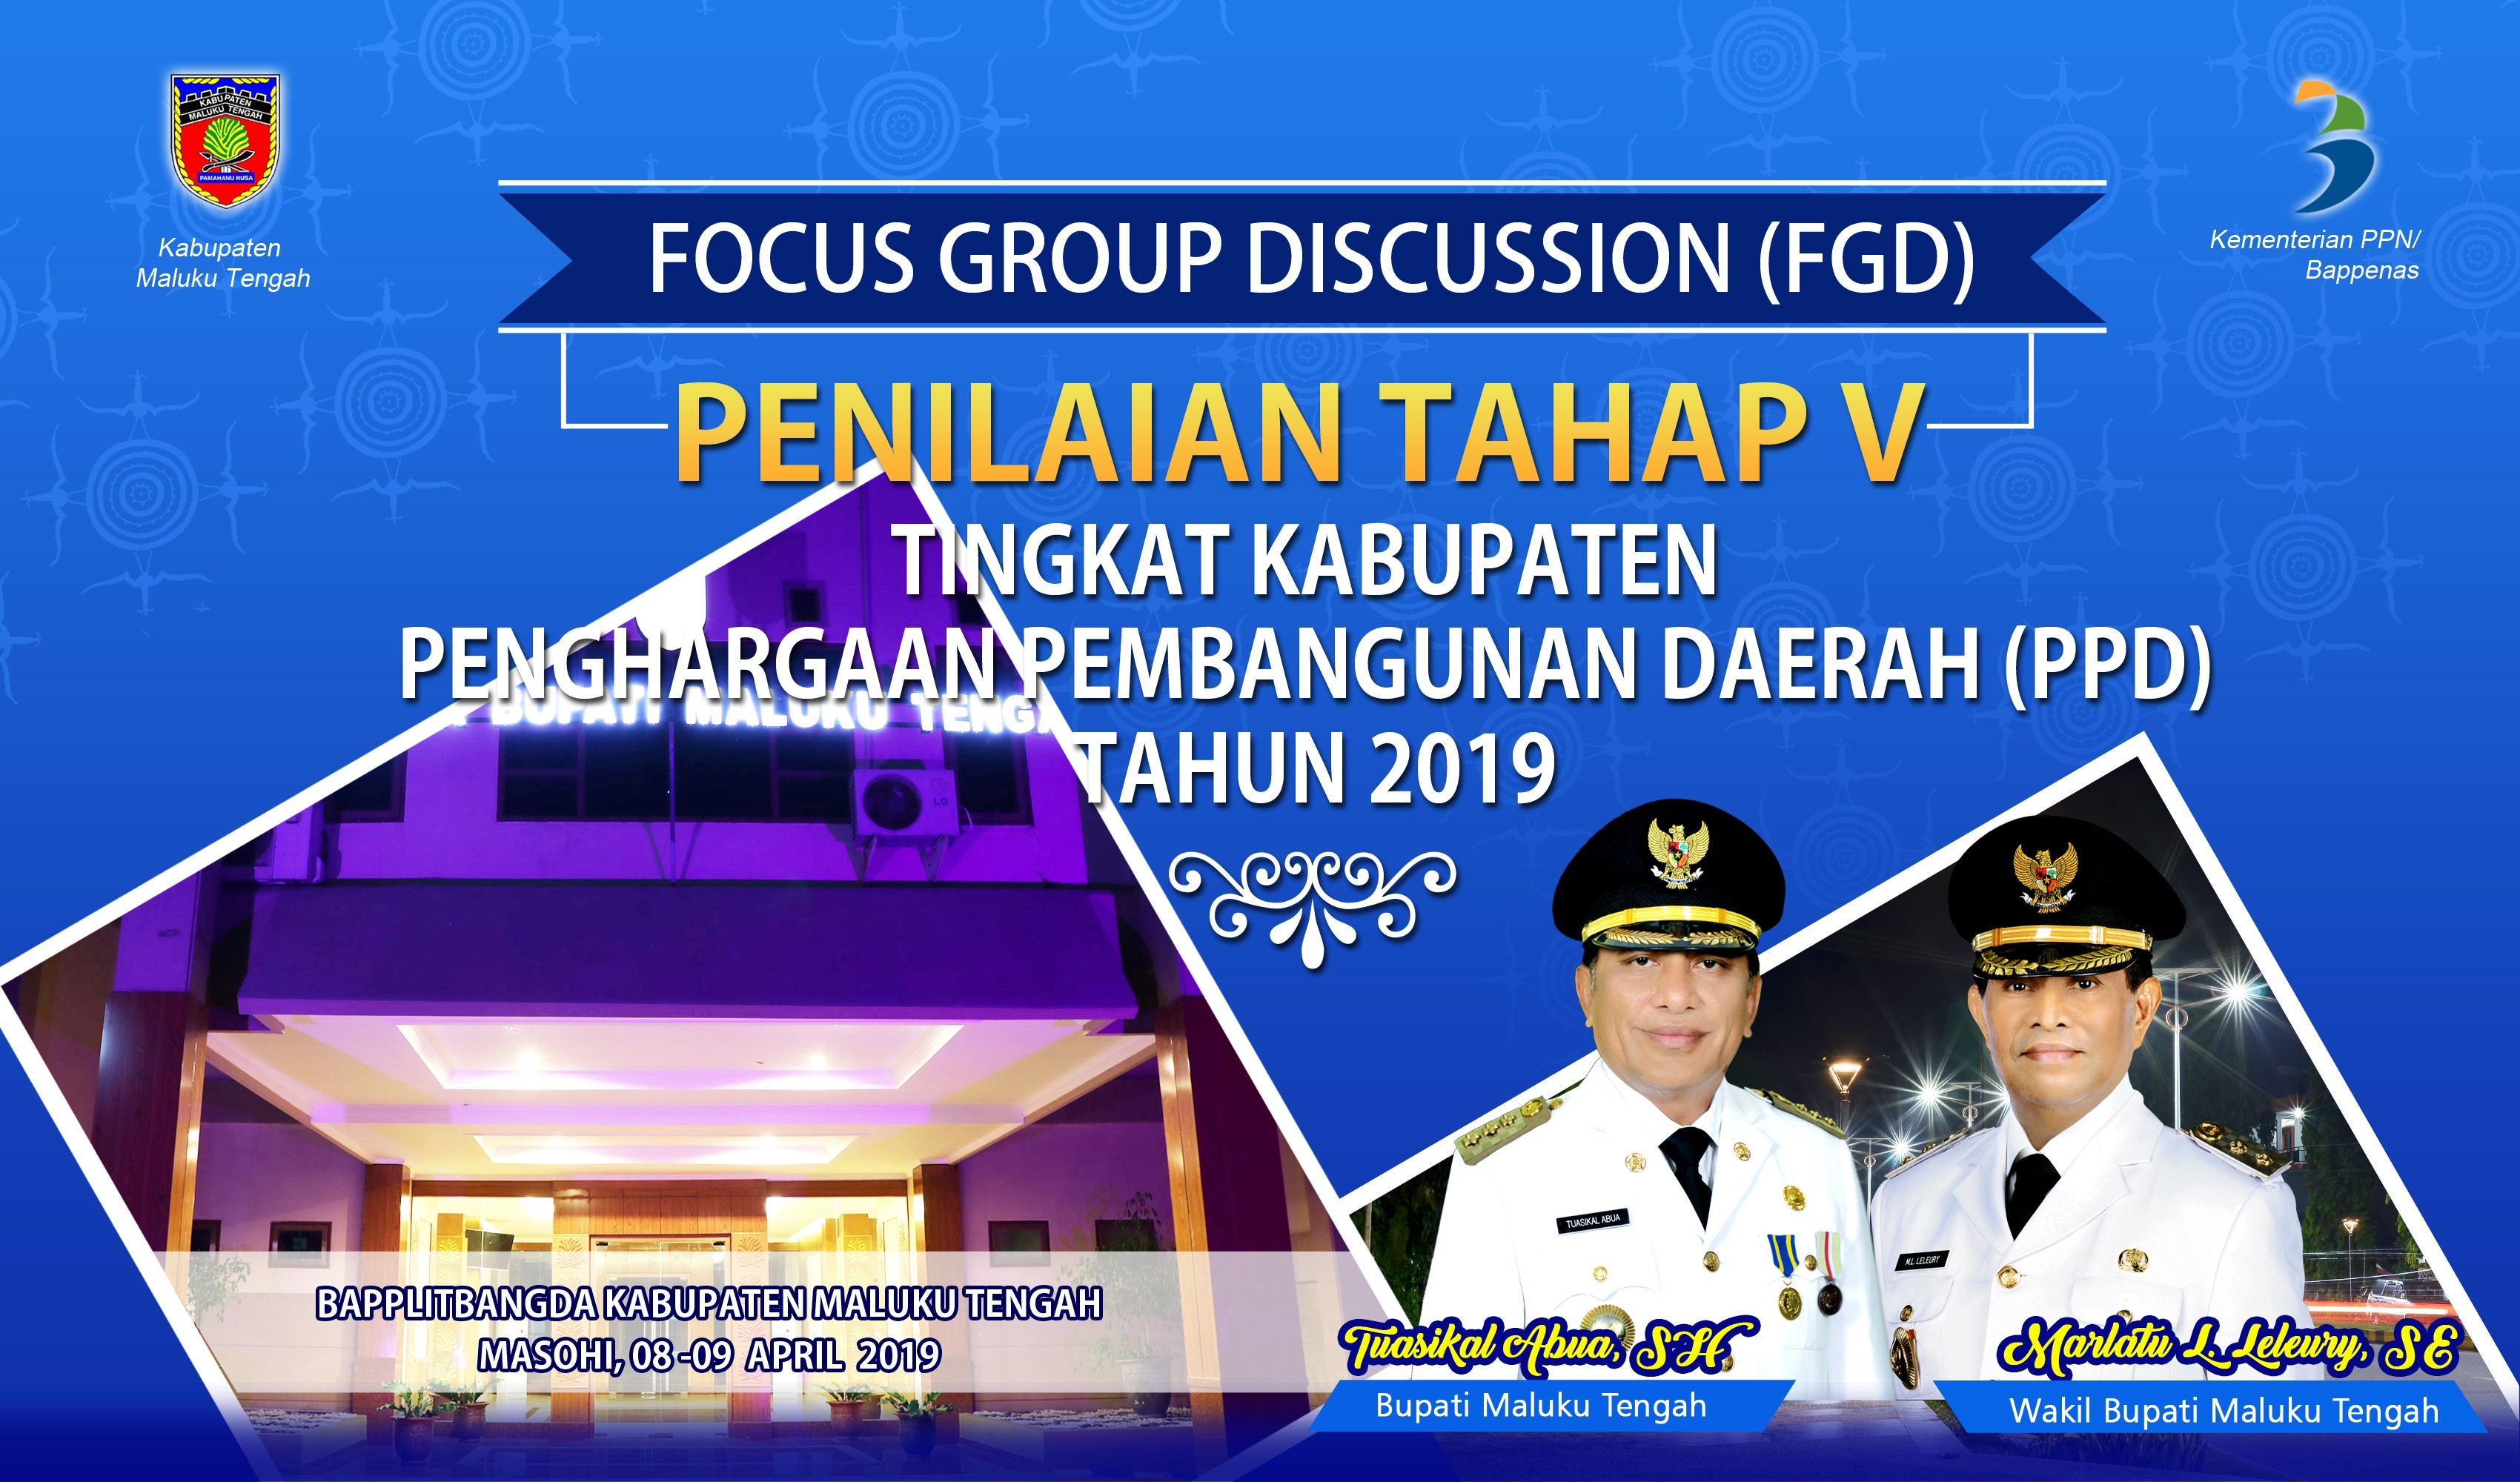 FOCUS GROUP DISCUSSION PPD TAHUN 2019